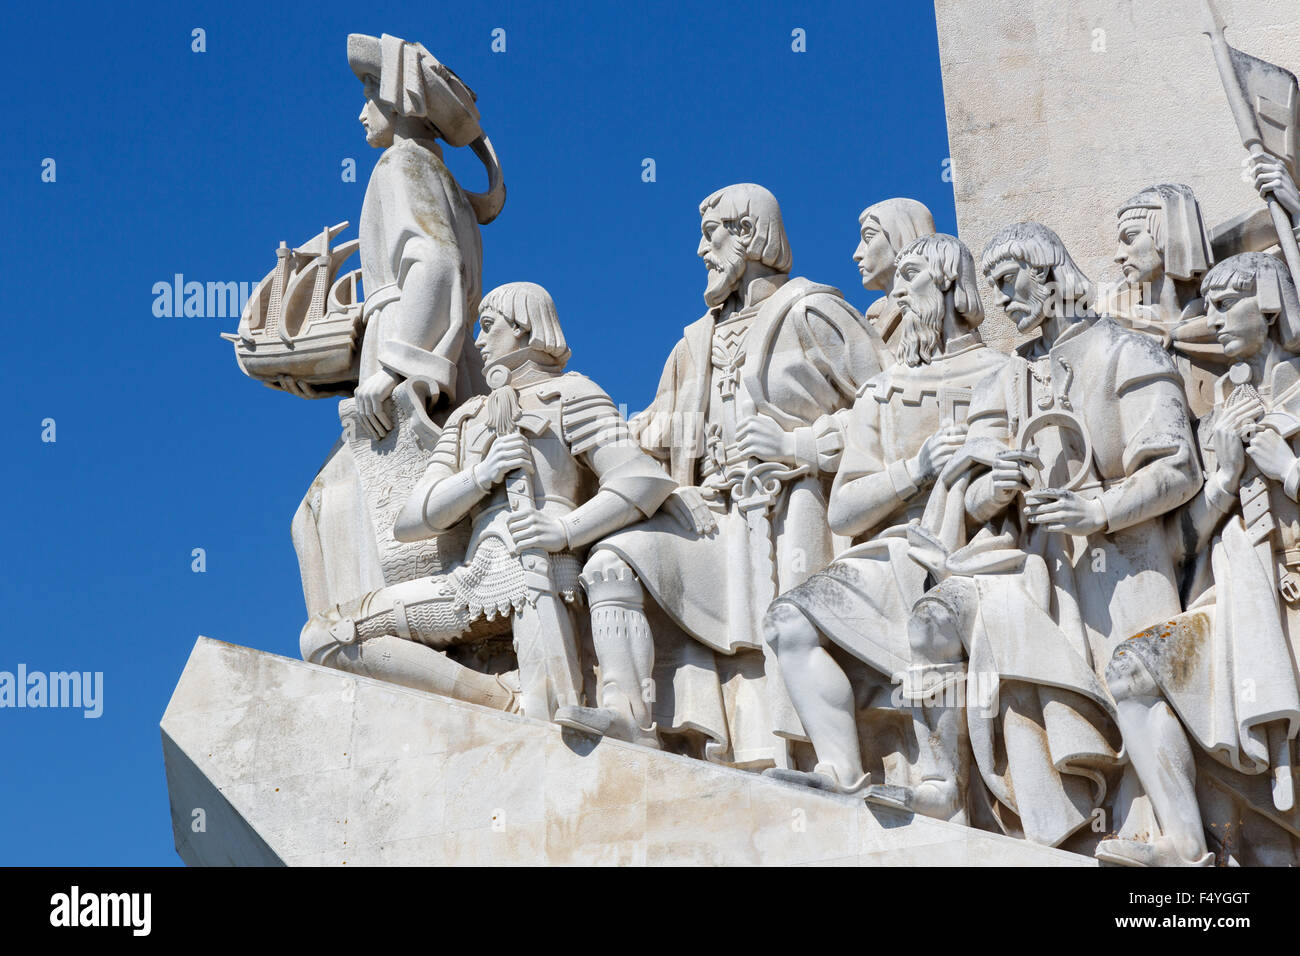 A close up of the Early Navigators on the Monument to the Discoveries (Padro dos Descobrimentos) against a clear - Stock Image